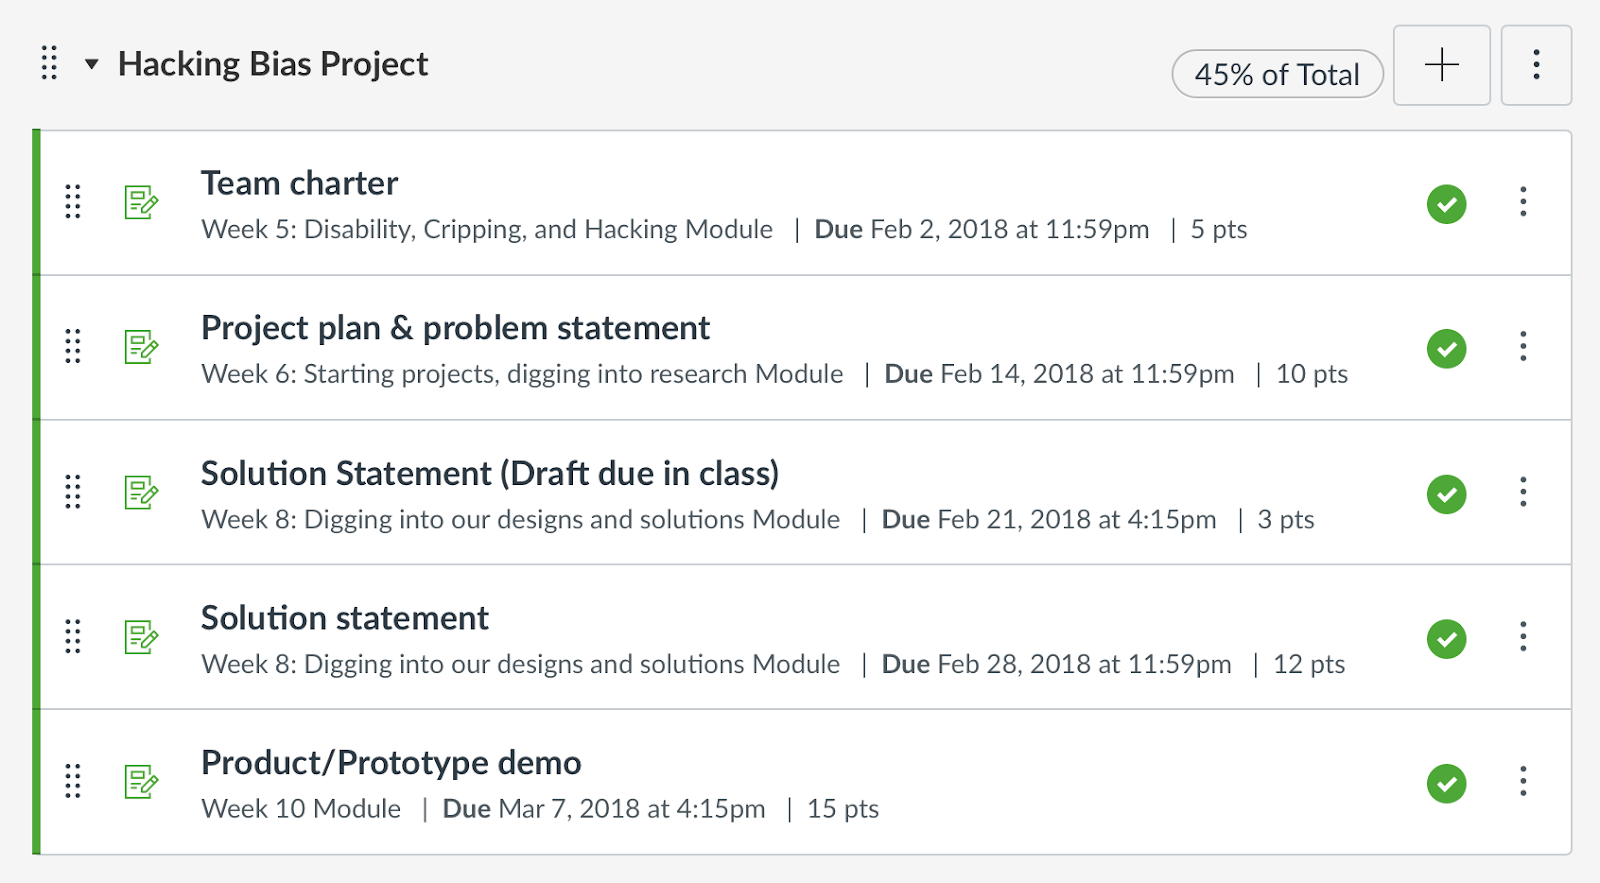 Screenshot of the hacking bias assignment components from the learning management system. Includes team charter, project plan & problem statement, solution statement, and product demo. Each assignment as due dates and the associated points listed.